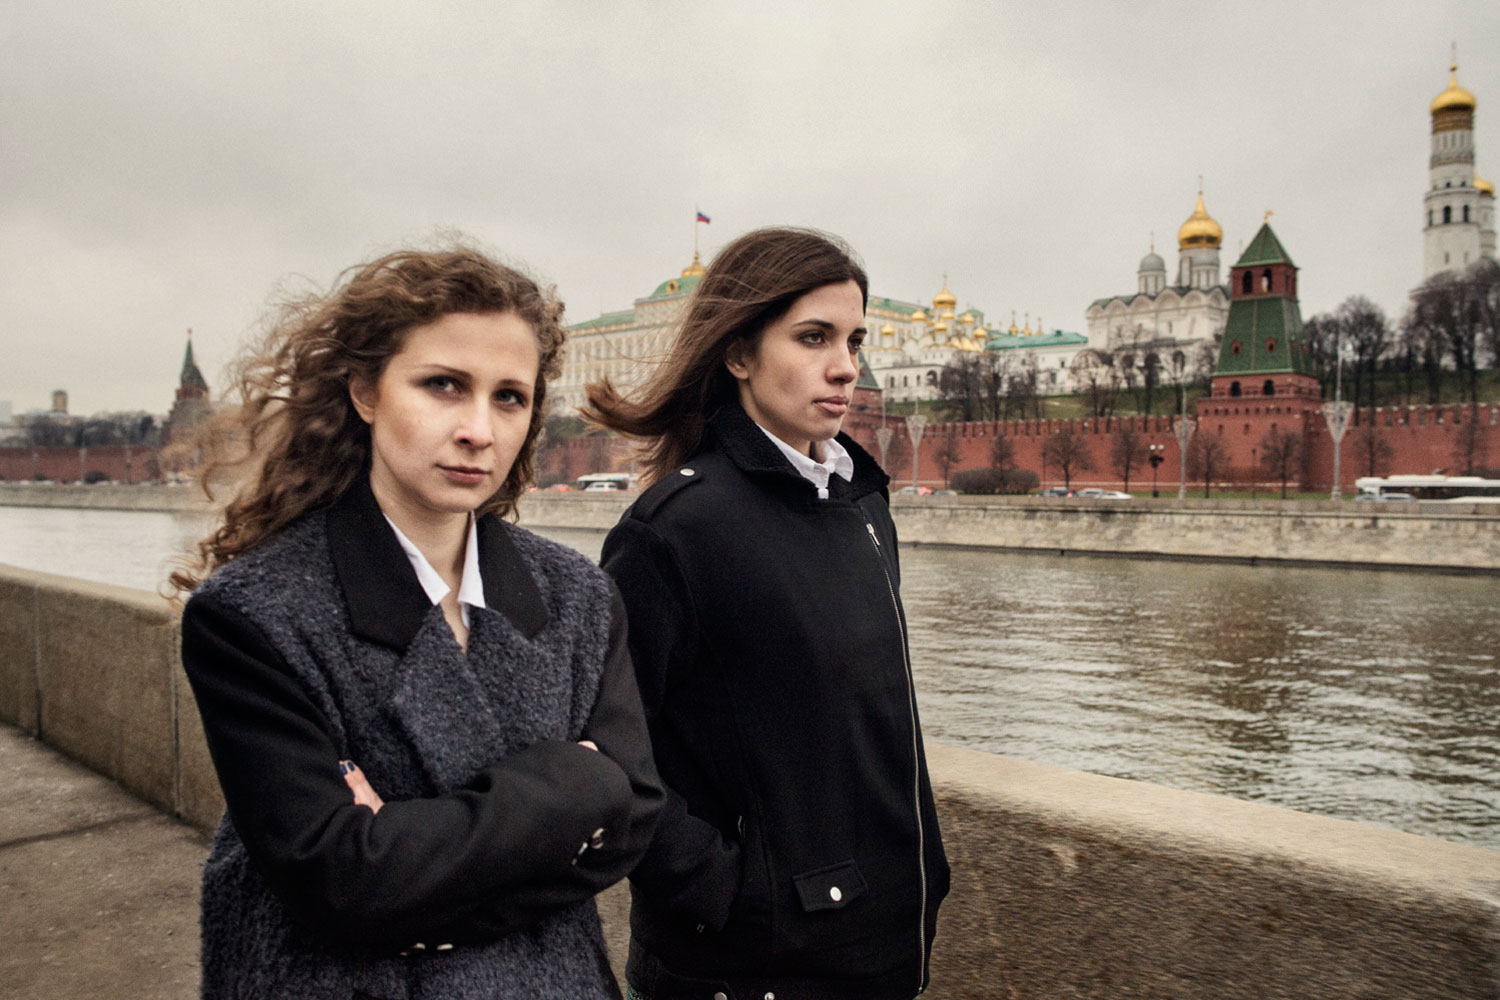 The following photographs were taken in Moscow, Dec. 27, 2013 - Jan. 1, 2014.                               Pussy Riot members  Nadezhda Tolokonnikova, 24, and Maria Alyokhina, 25, walk in downtown Moscow after serving more than 21 months of a two-year prison term for performing a profanity-laced  punk prayer  protest against President Vladimir Putin in Moscow's main Russian Orthodox cathedral.